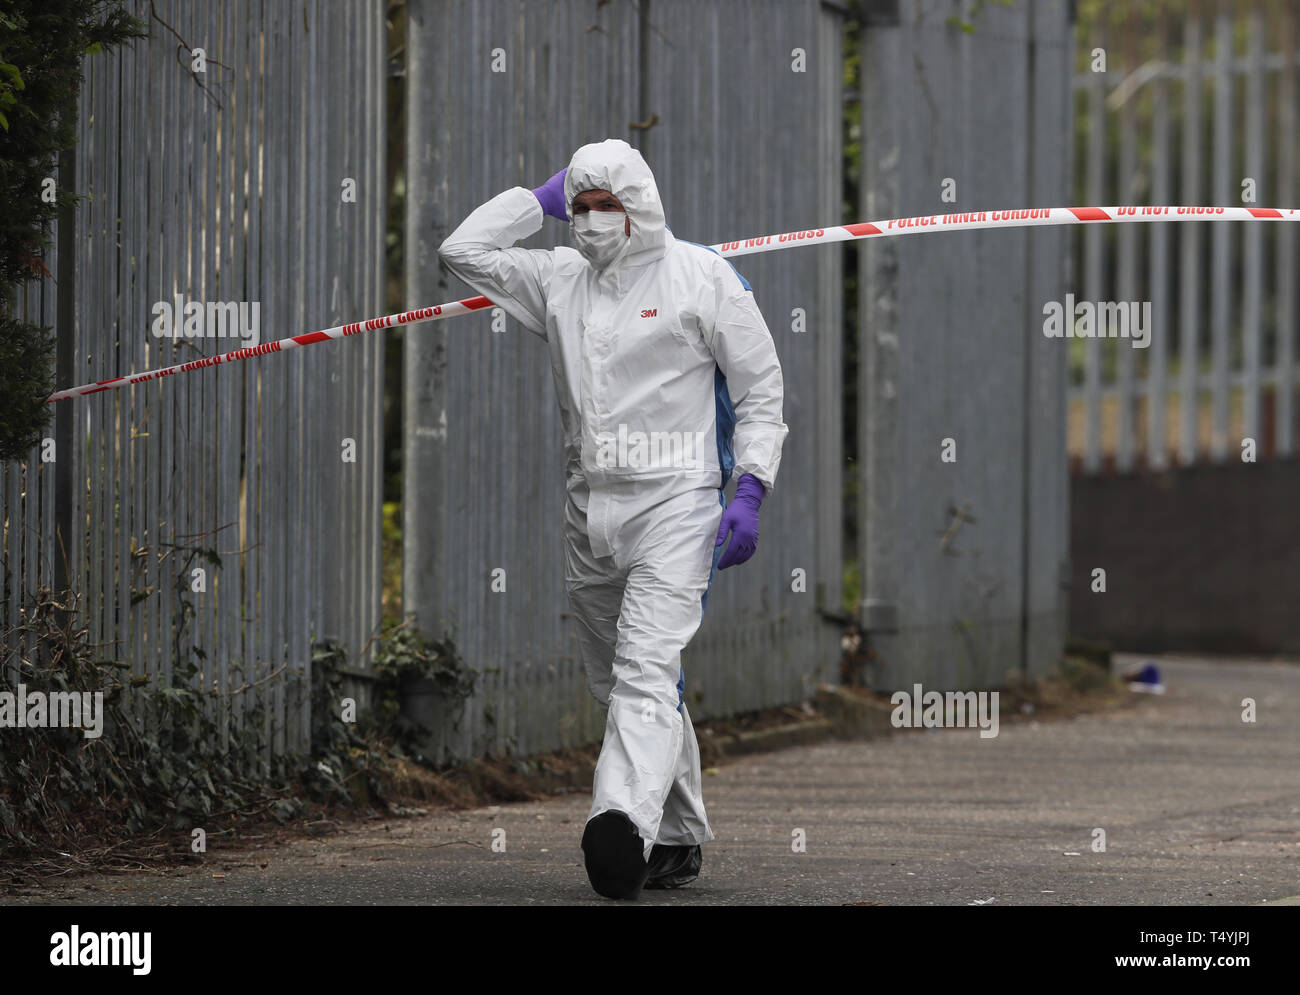 "The scene in Londonderry, Northern Ireland, following the death of 29-year-old journalist Lyra McKee who was shot and killed when guns were fired and petrol bombs were thrown in what police are treating as a ""terrorist incident"". Stock Photo"